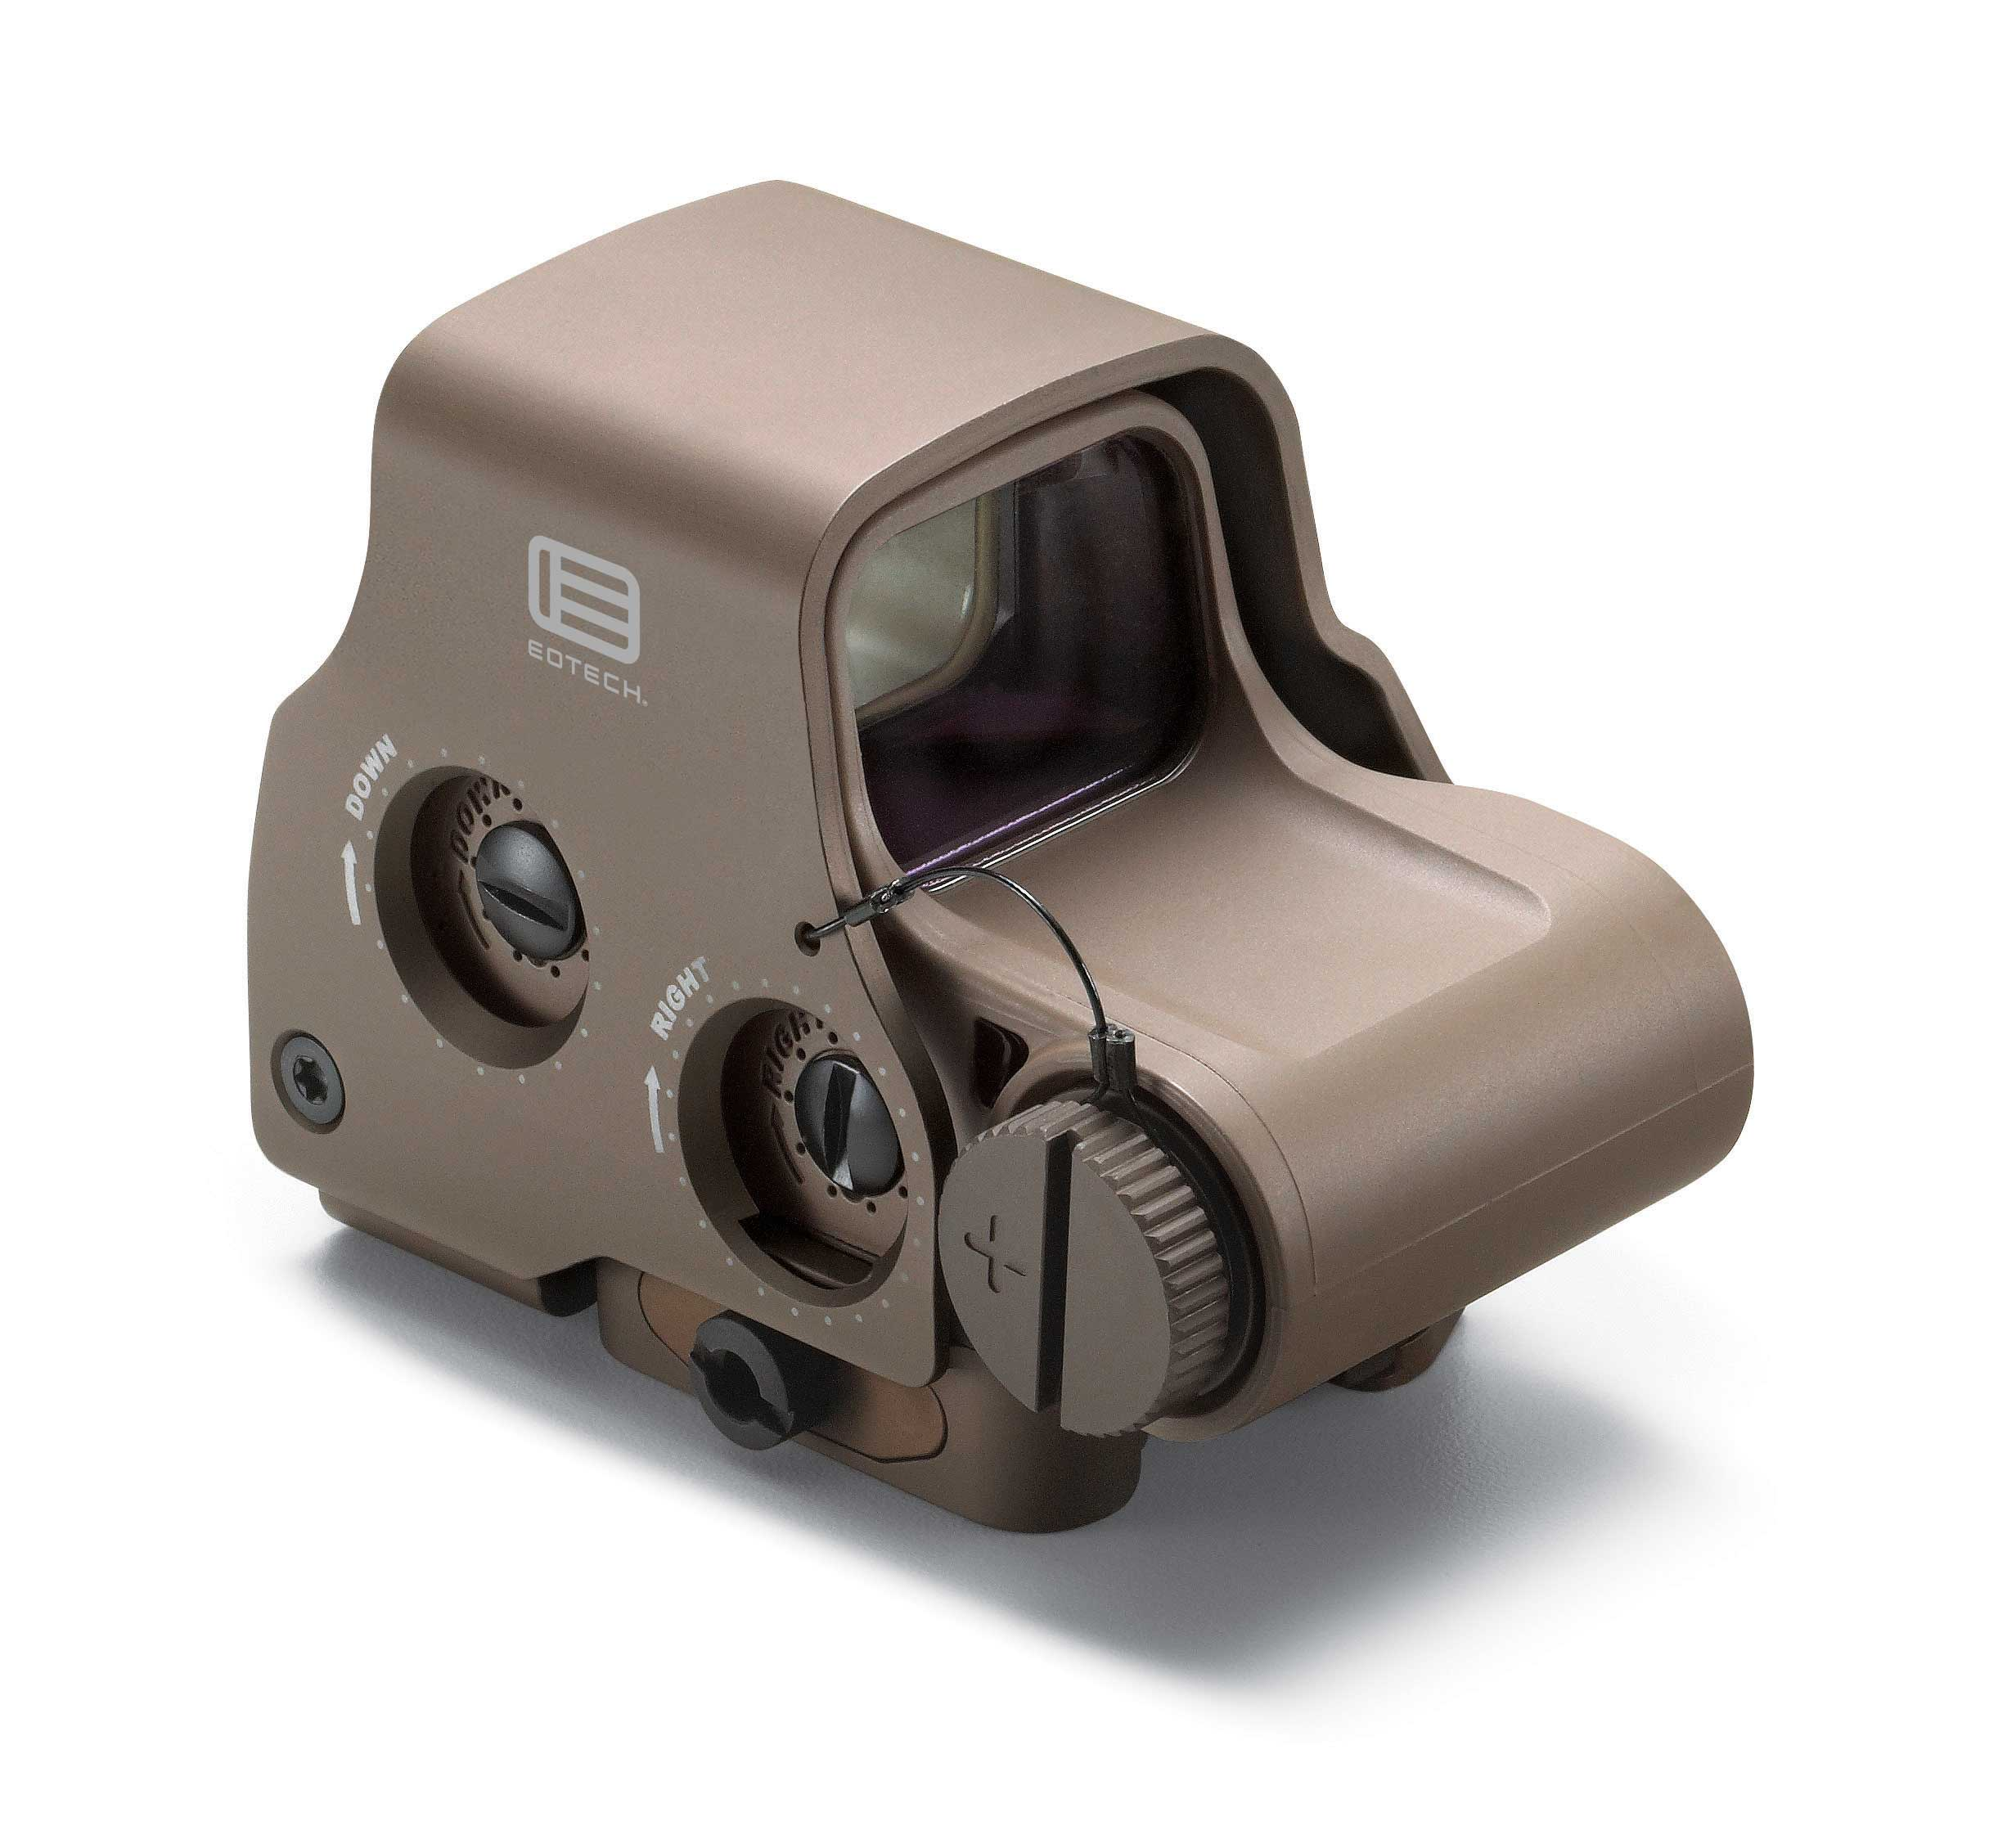 EOTech HWS Model EXPS3-2 Holographic Sight - 1x - Illum. 68 MOA Ring w/ 2 1-MOA Dots - 1 MOA Red Dot - Tan